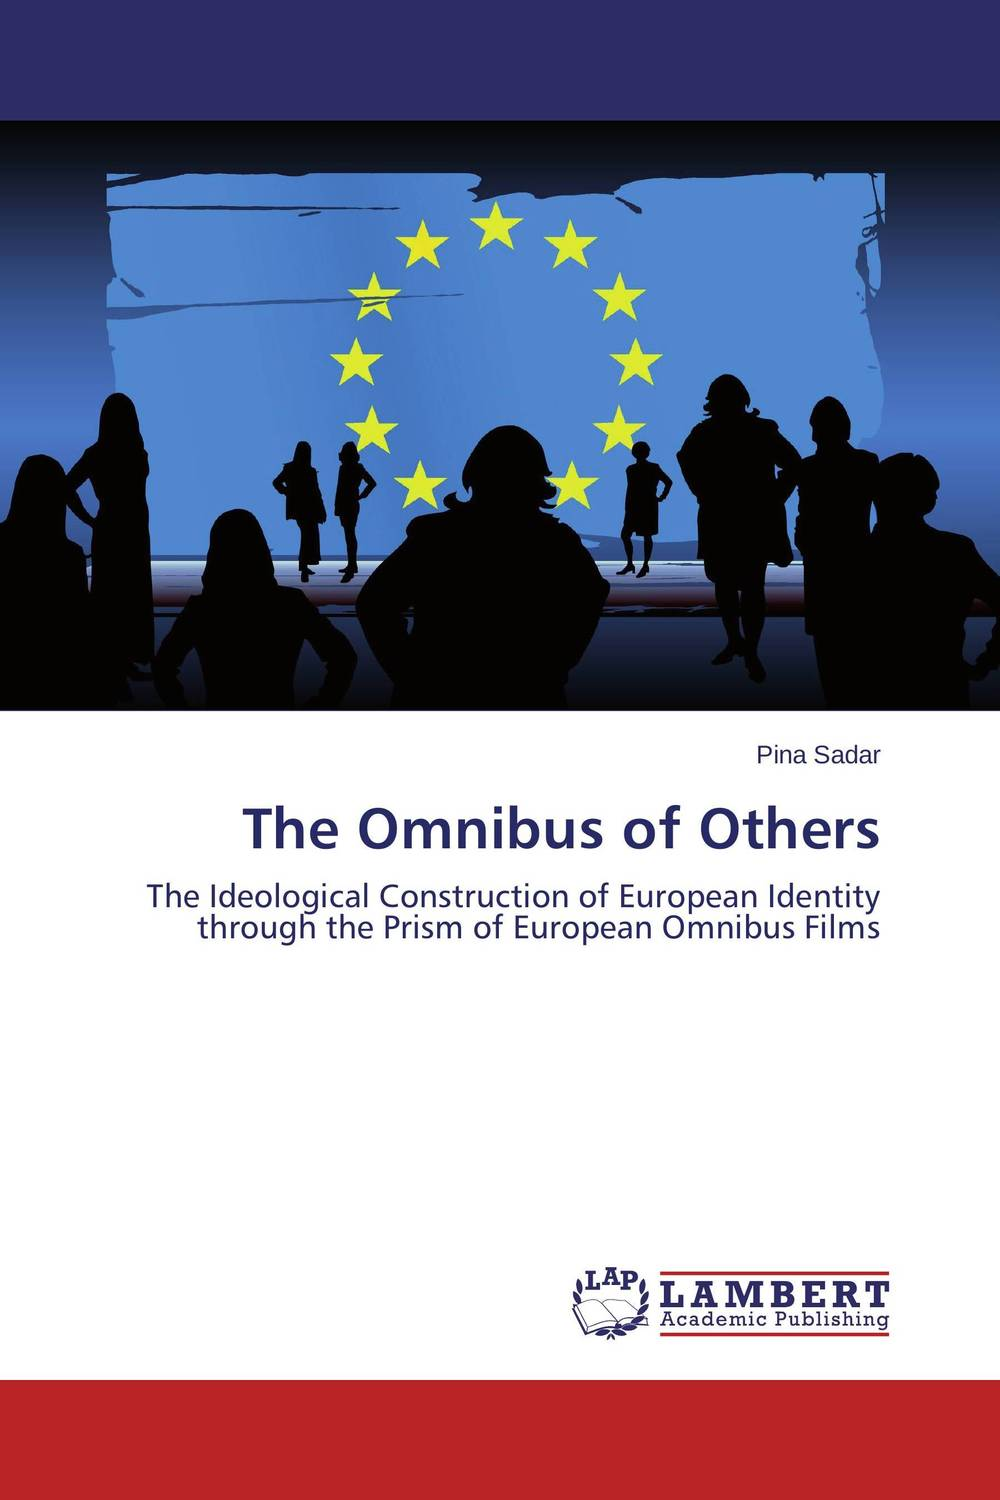 The Omnibus of Others